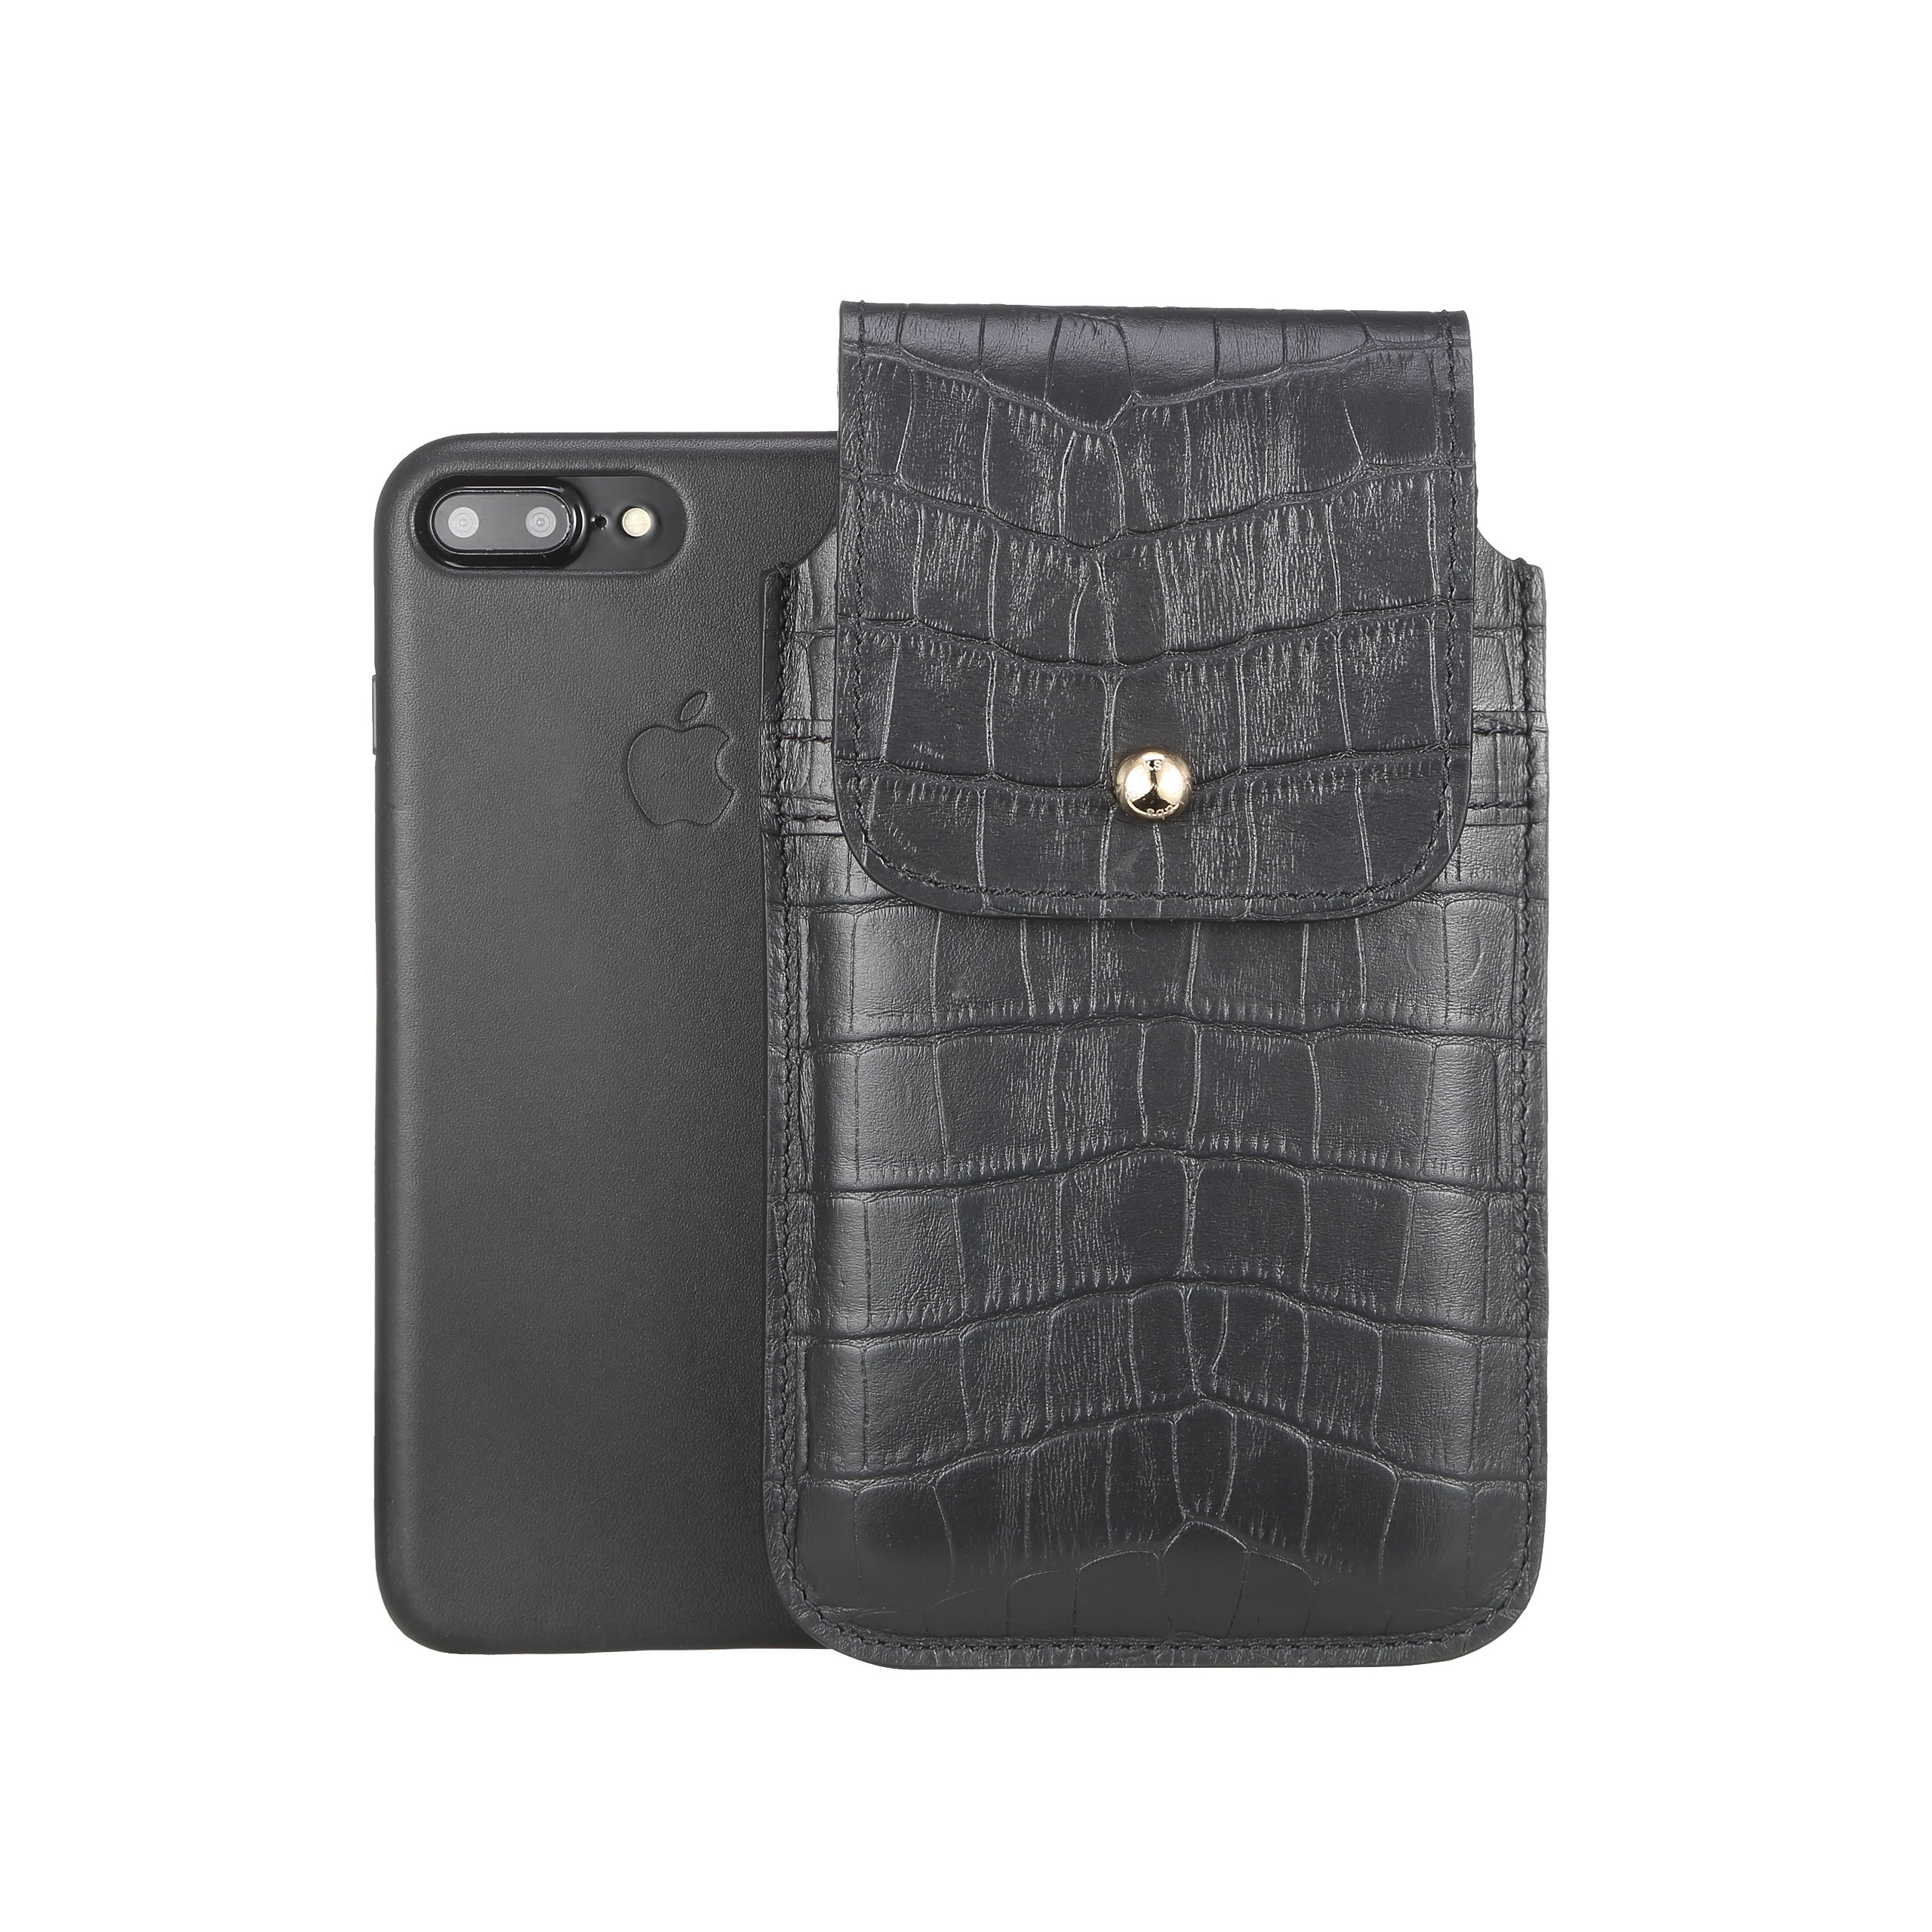 Blacksmith-Labs Barrett Mezzano 2017 Premium Genuine Leather Swivel Belt Clip Holster for Apple iPhone 7 Plus for use with Apple Leather Case - Black Croc Embossed Cowhide/Gold Belt Clip by Blacksmith-Labs (Image #3)